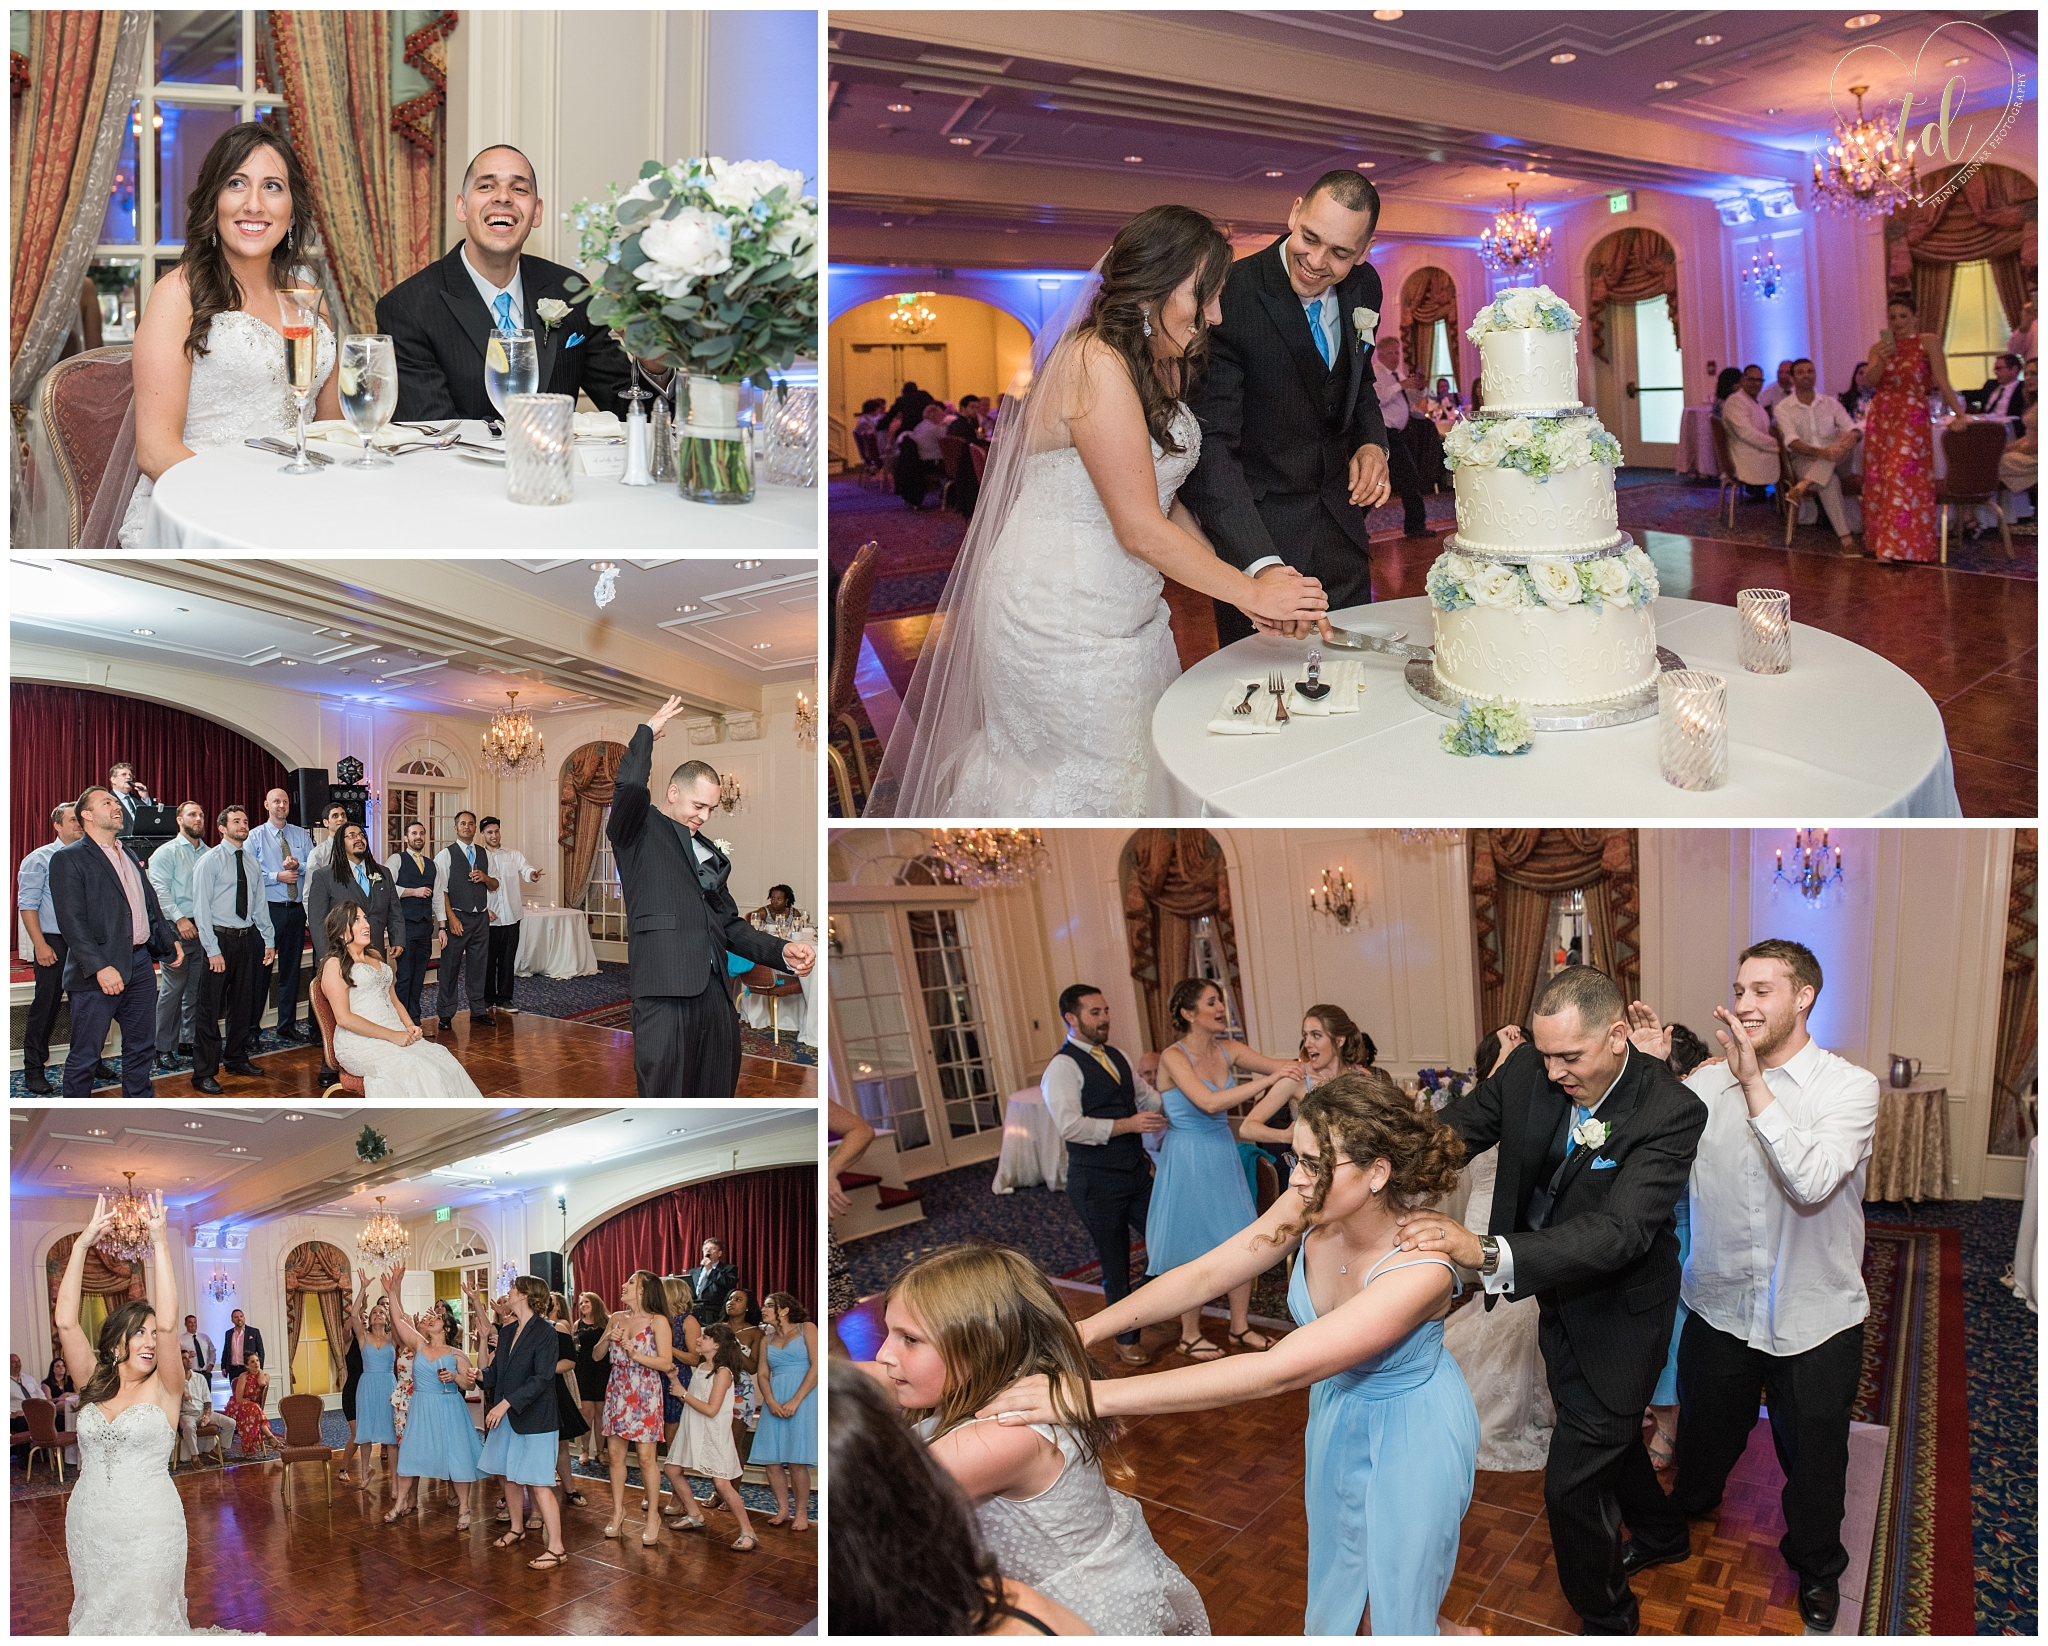 Wedding Reception at the Wentworth by the Sea in New Castle, New Hampshire